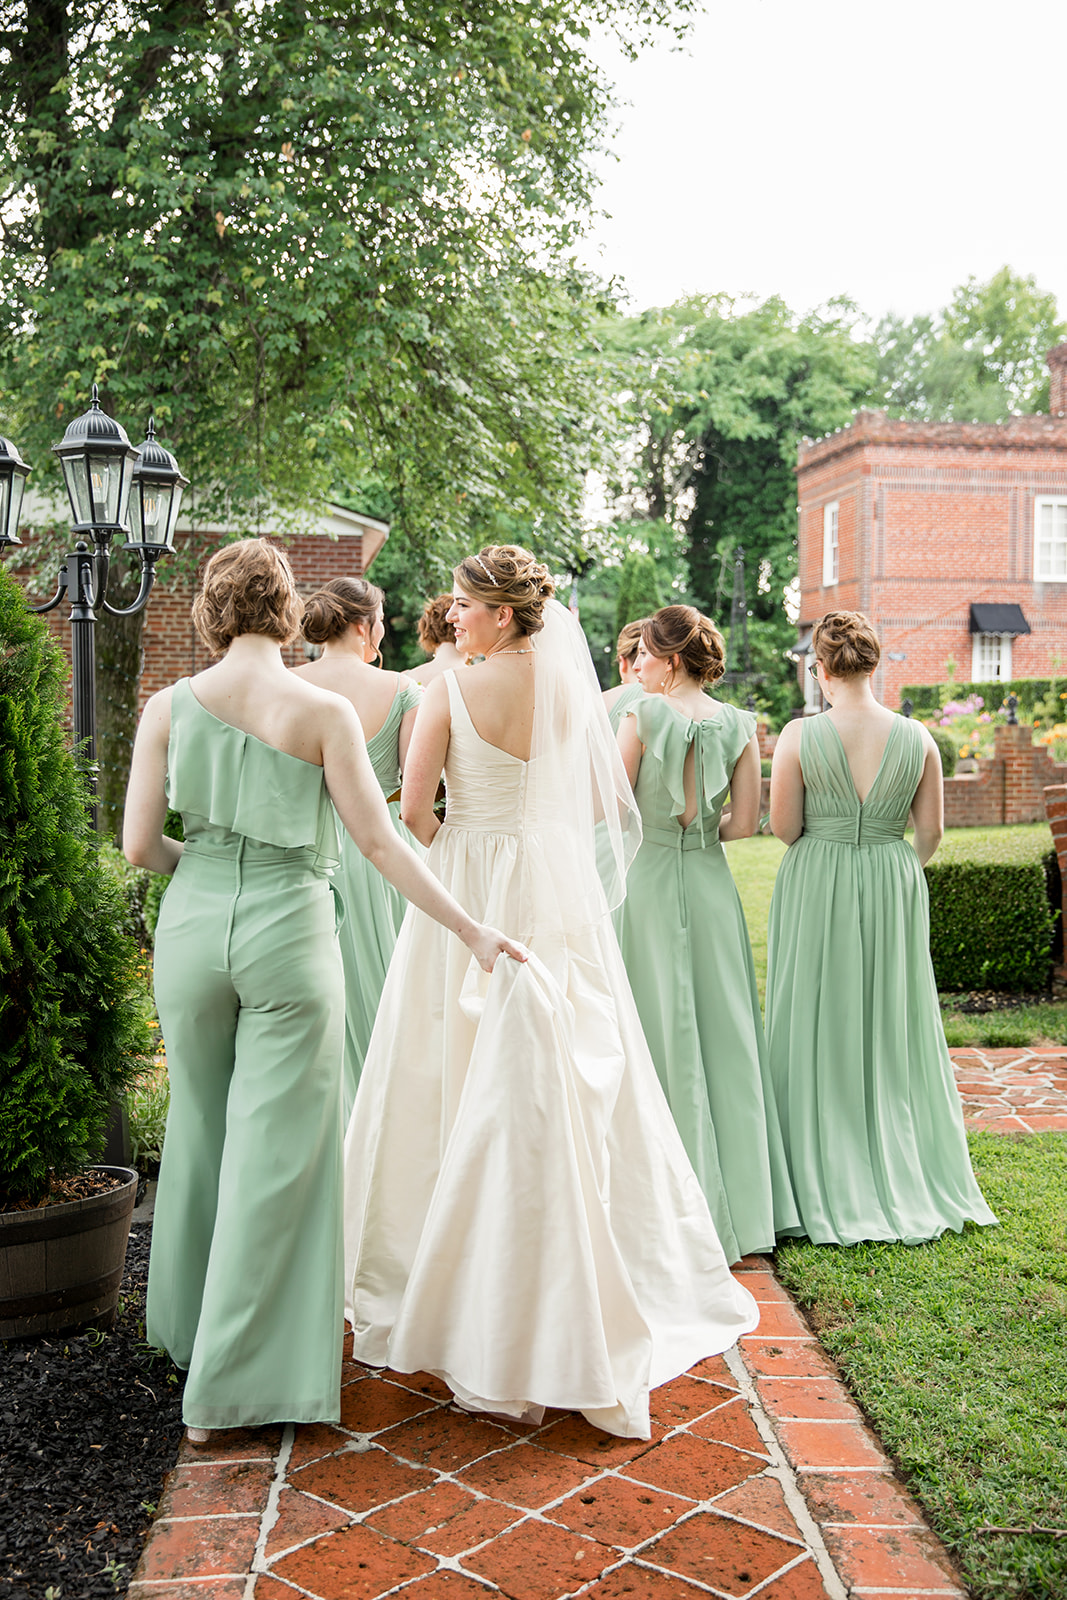 Rachel  Brennens Wedding at Historic Mankin Mansion - Image Property of www.j-dphoto.com